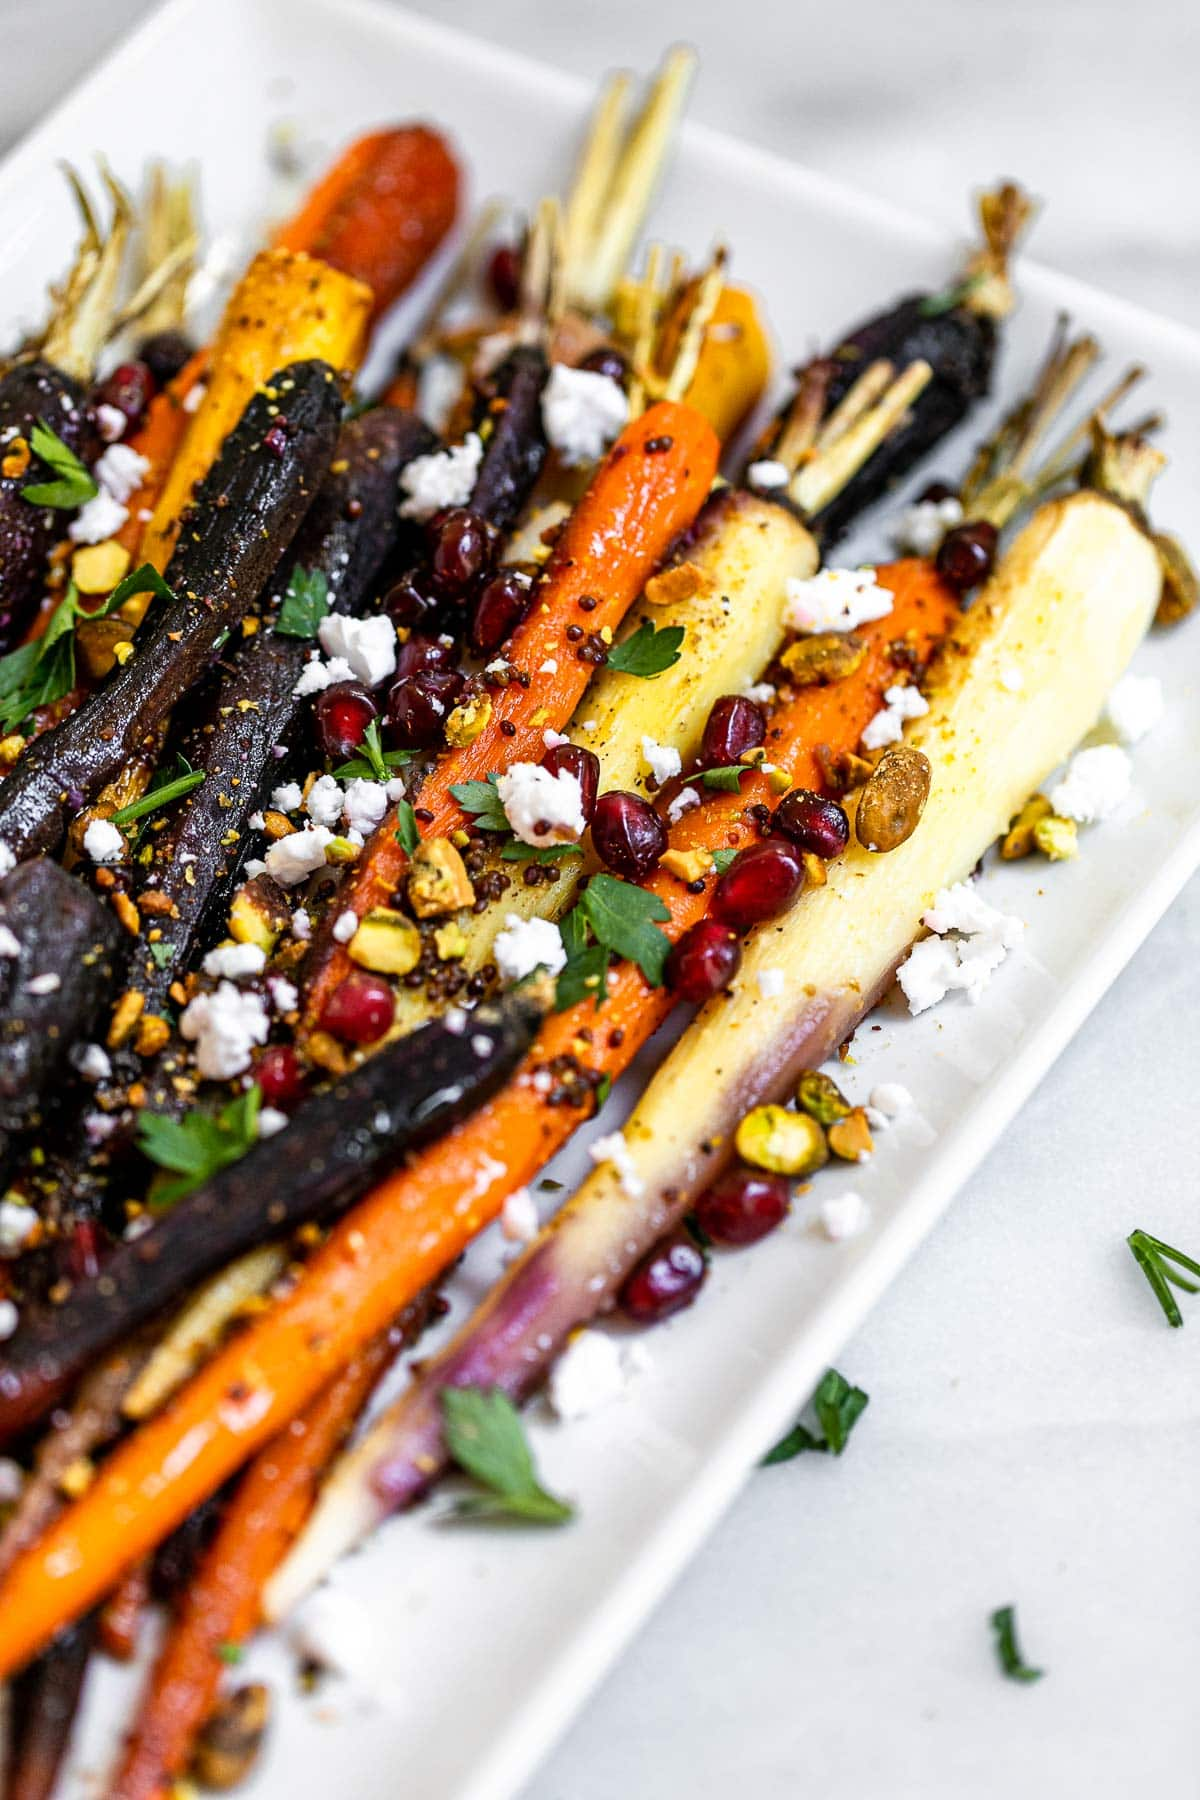 Maple glazed carrots with chopped pistachios and feta.